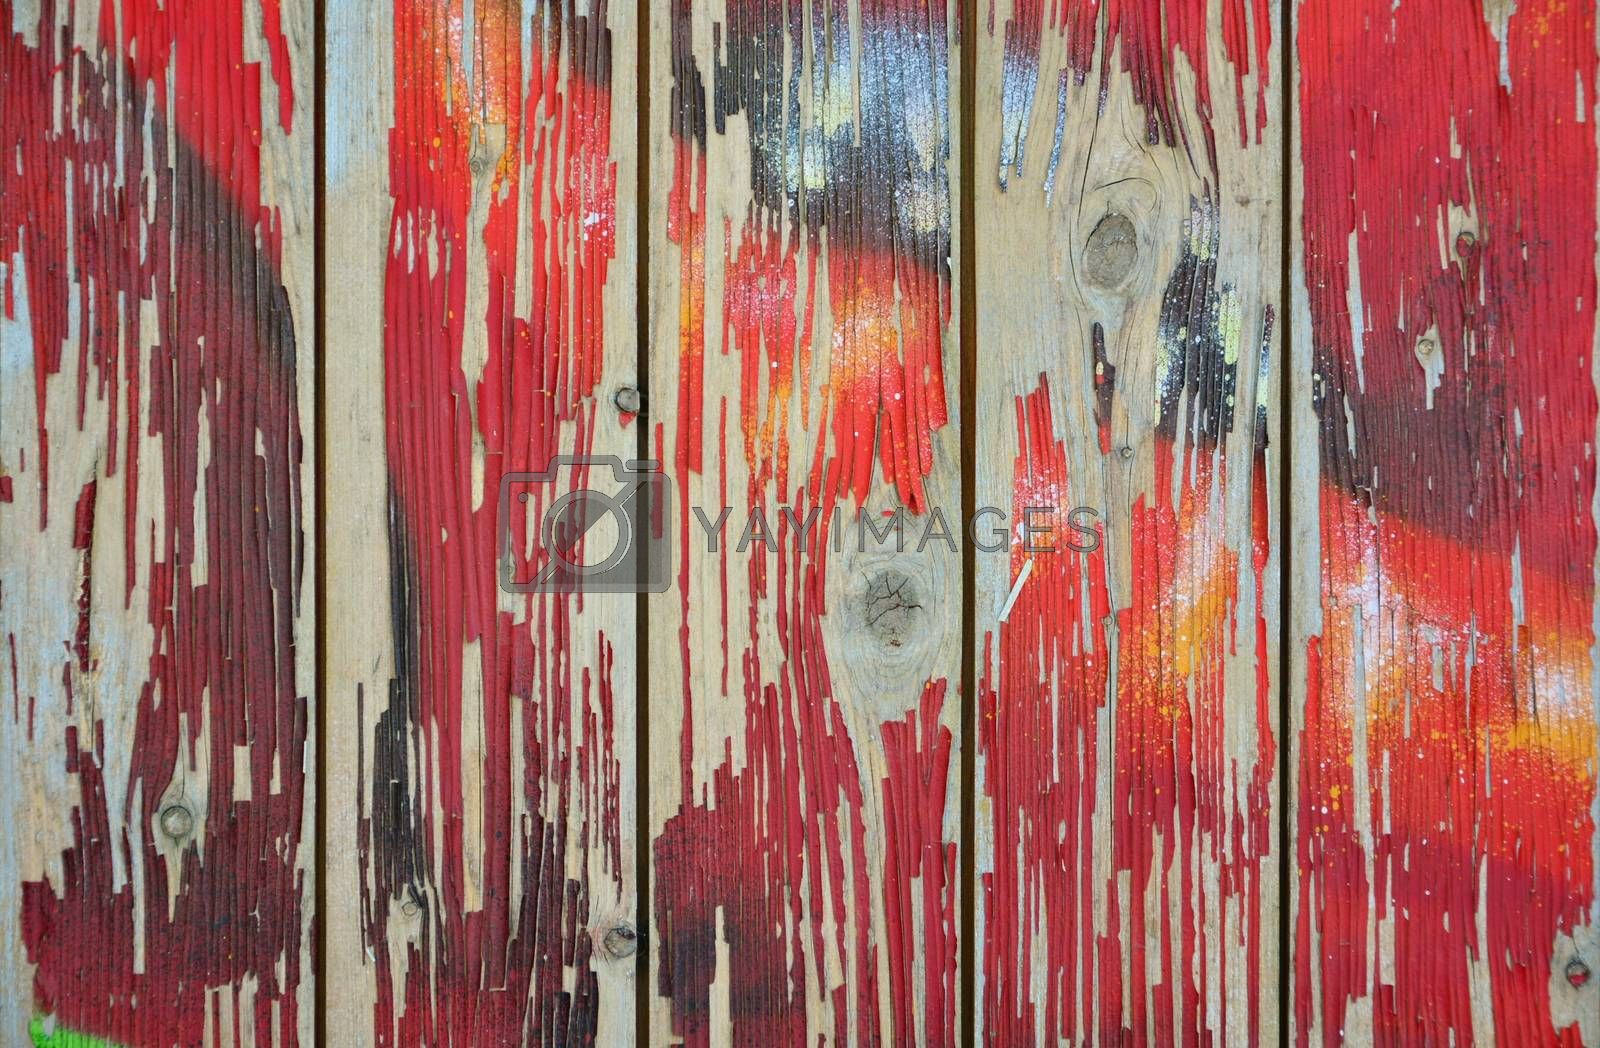 Royalty free image of Peeling paint on grunge wooden surface by Sergej